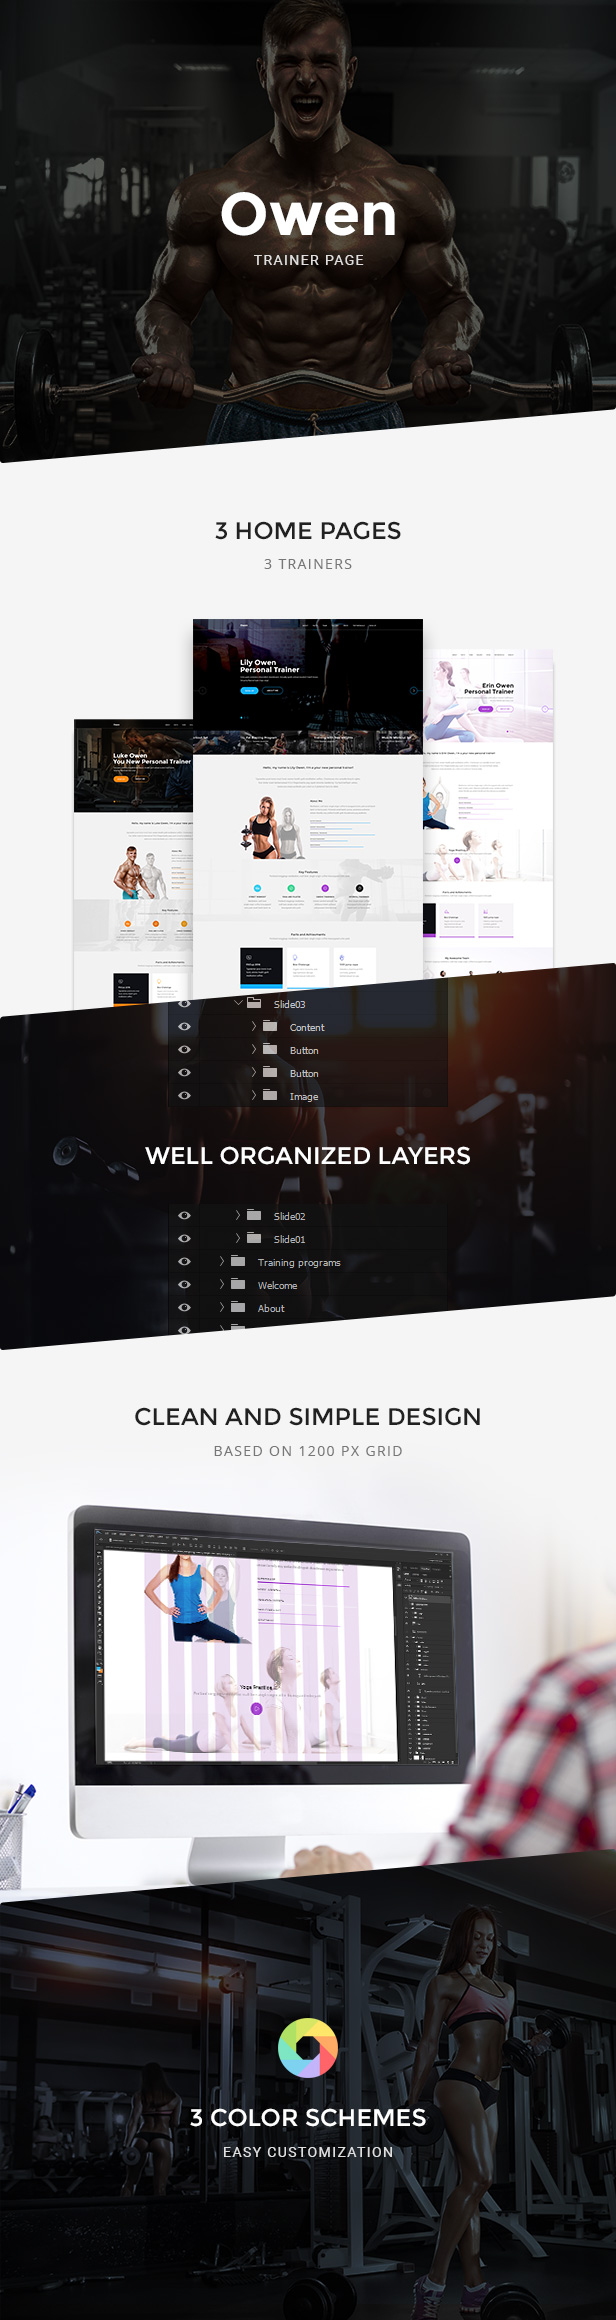 Owen — Personal Trainer Landing page PSD Template